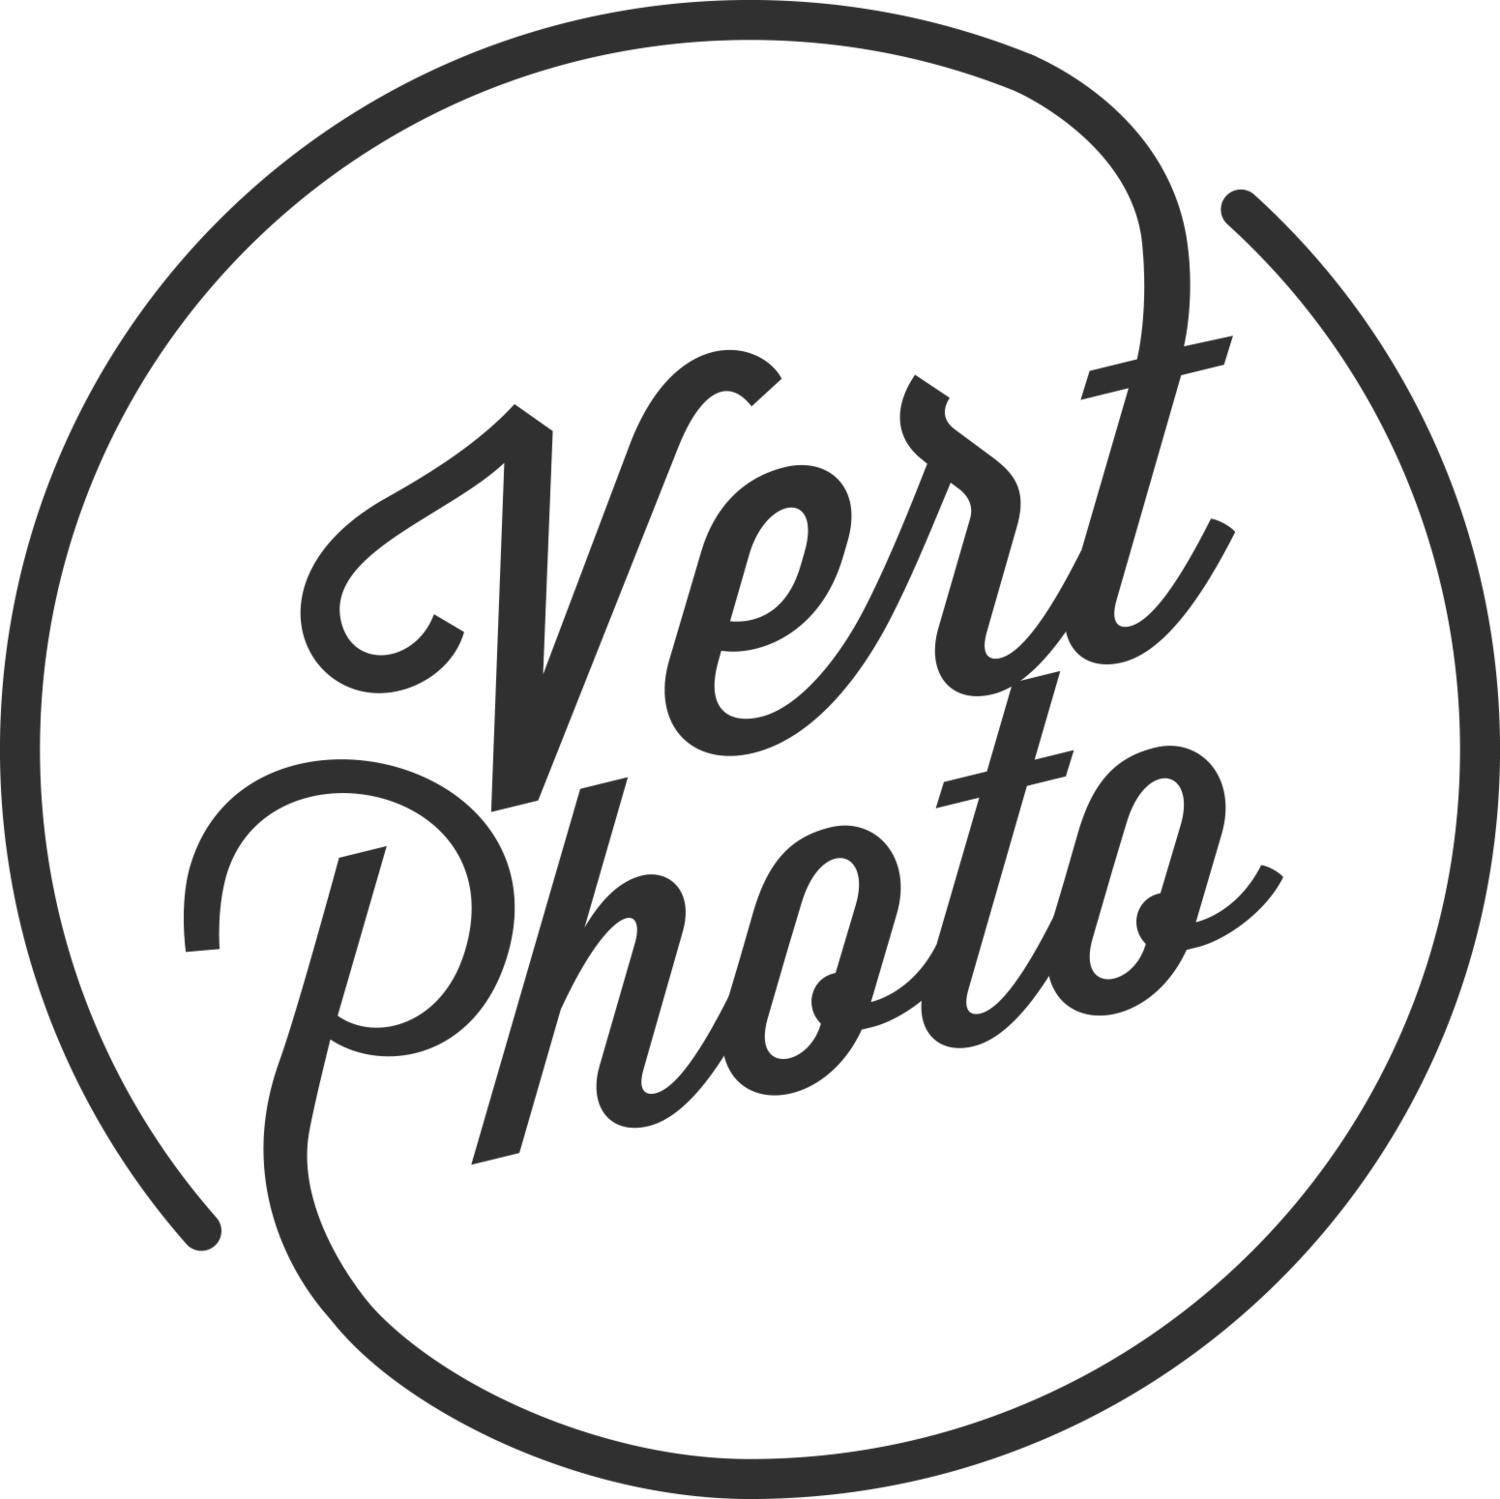 Vert Photo - Modern Wedding Photography by Hunter Thompson